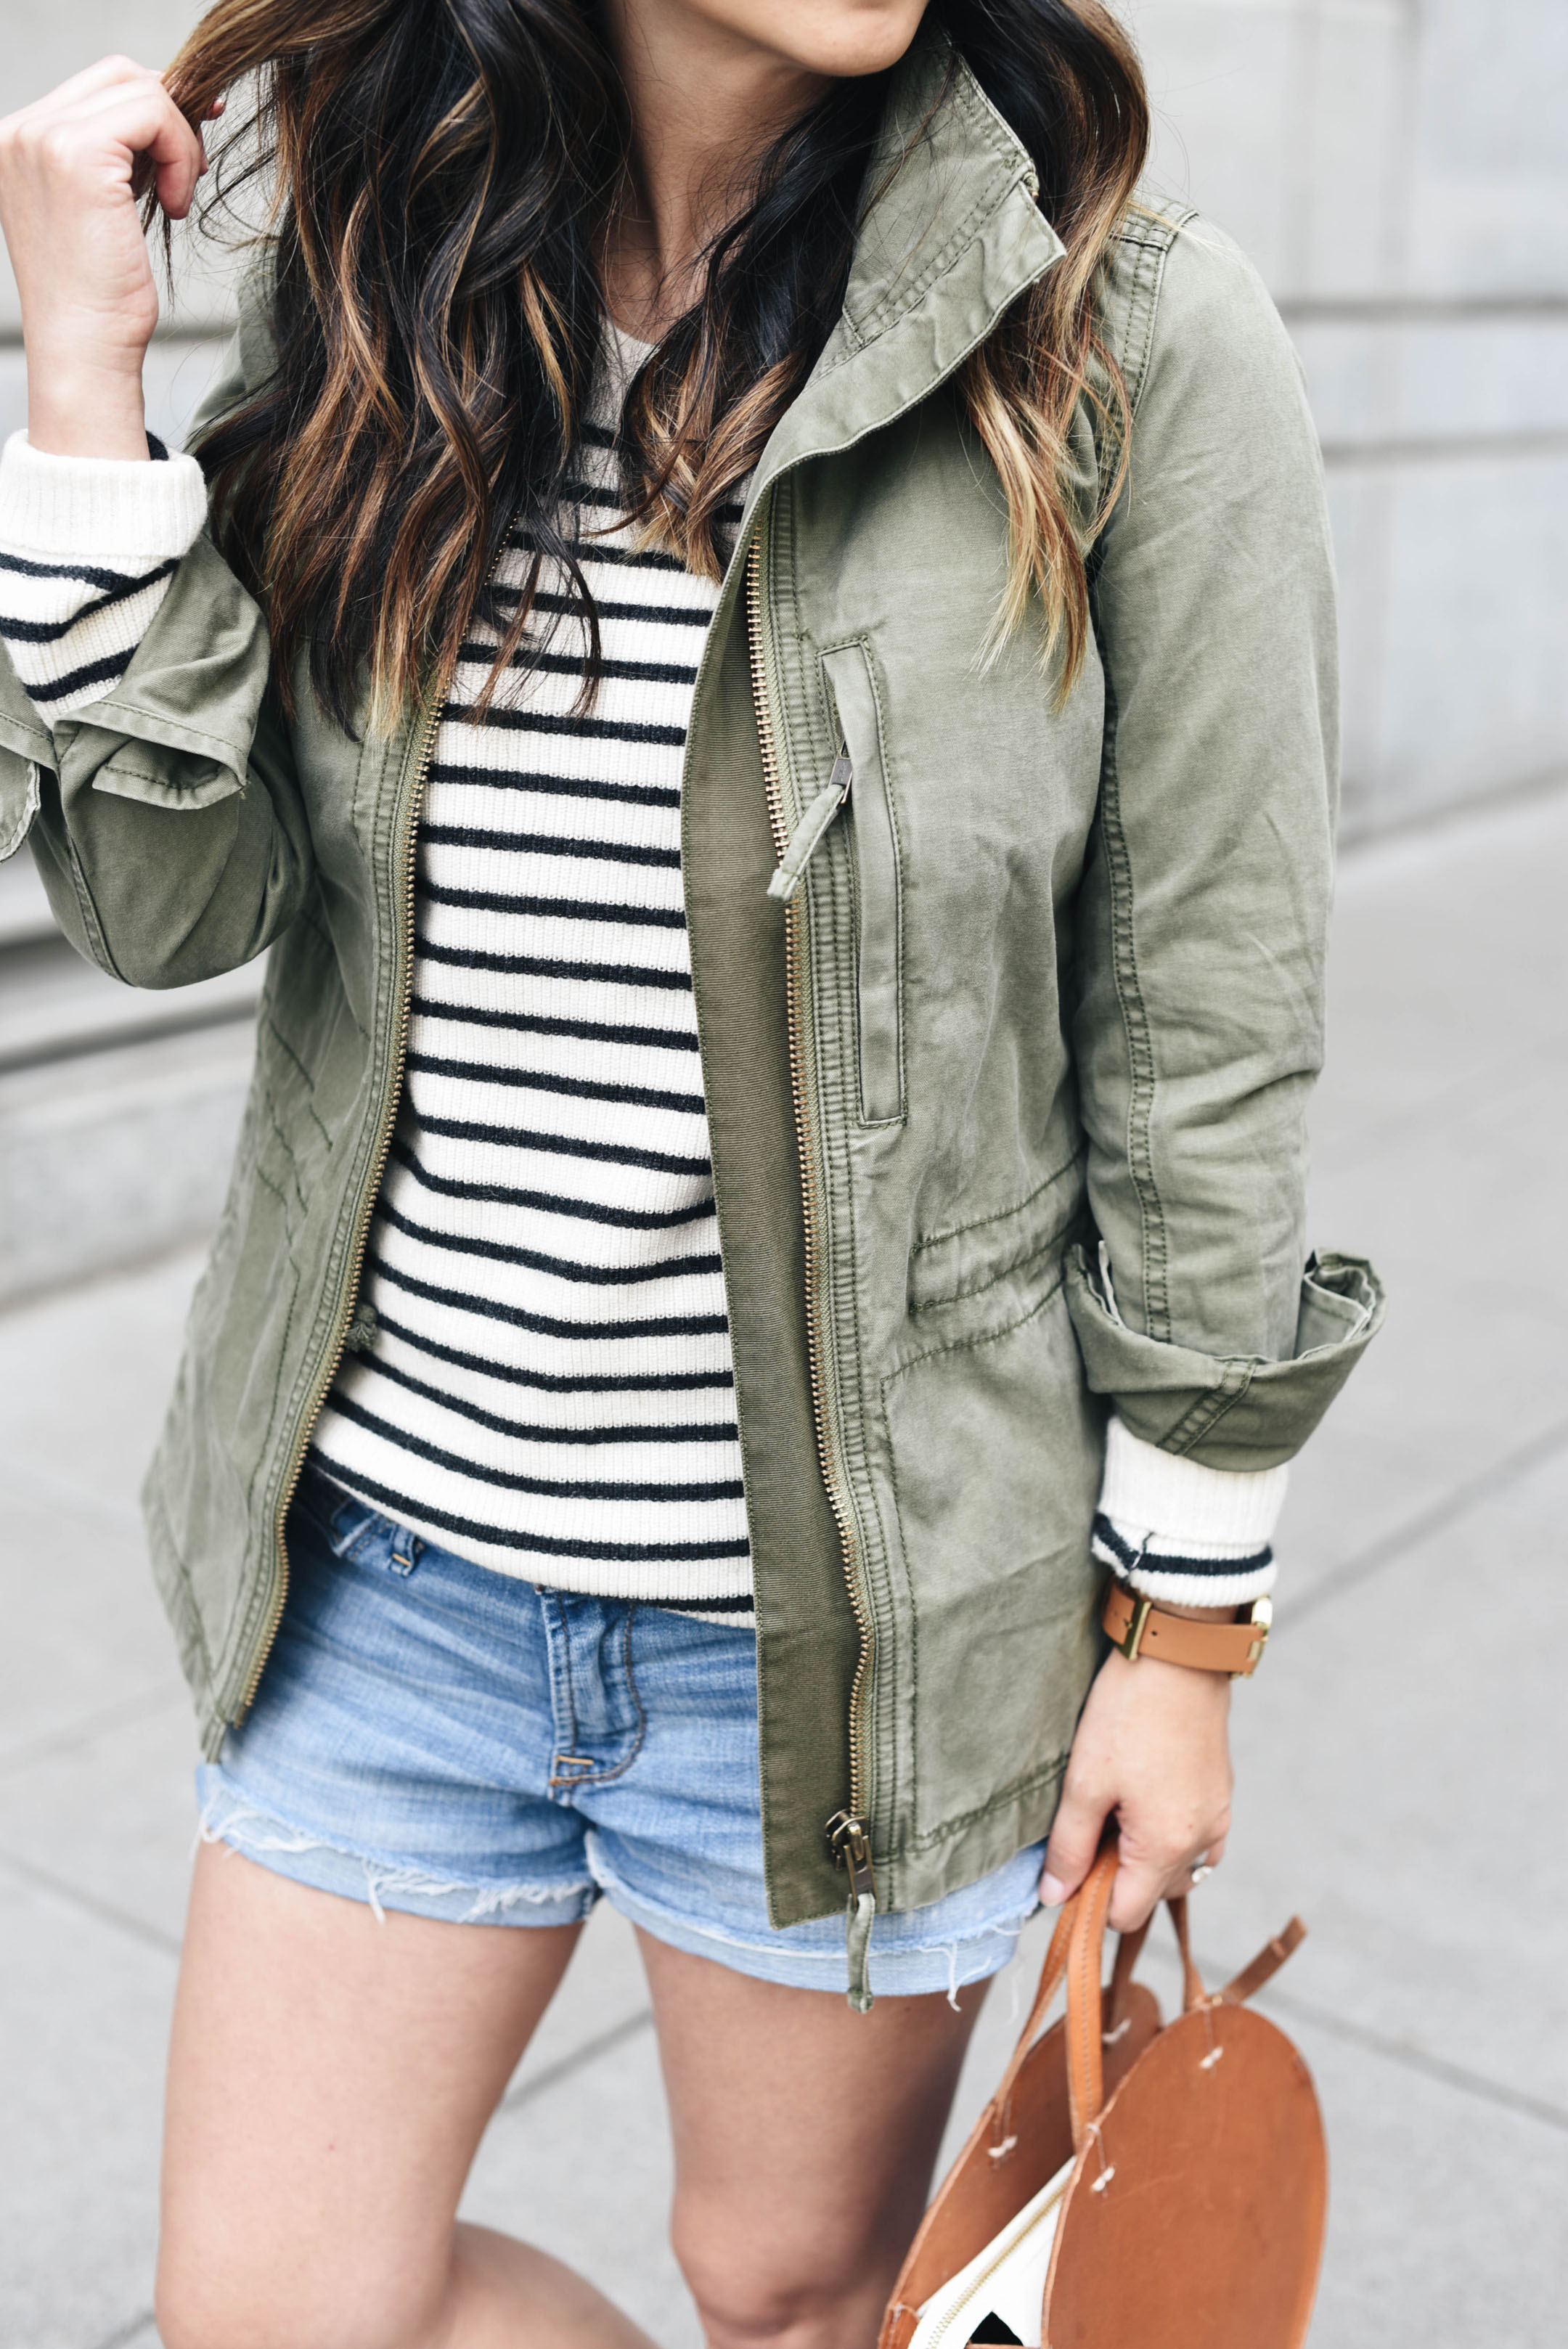 Easy summer to fall transitional looks